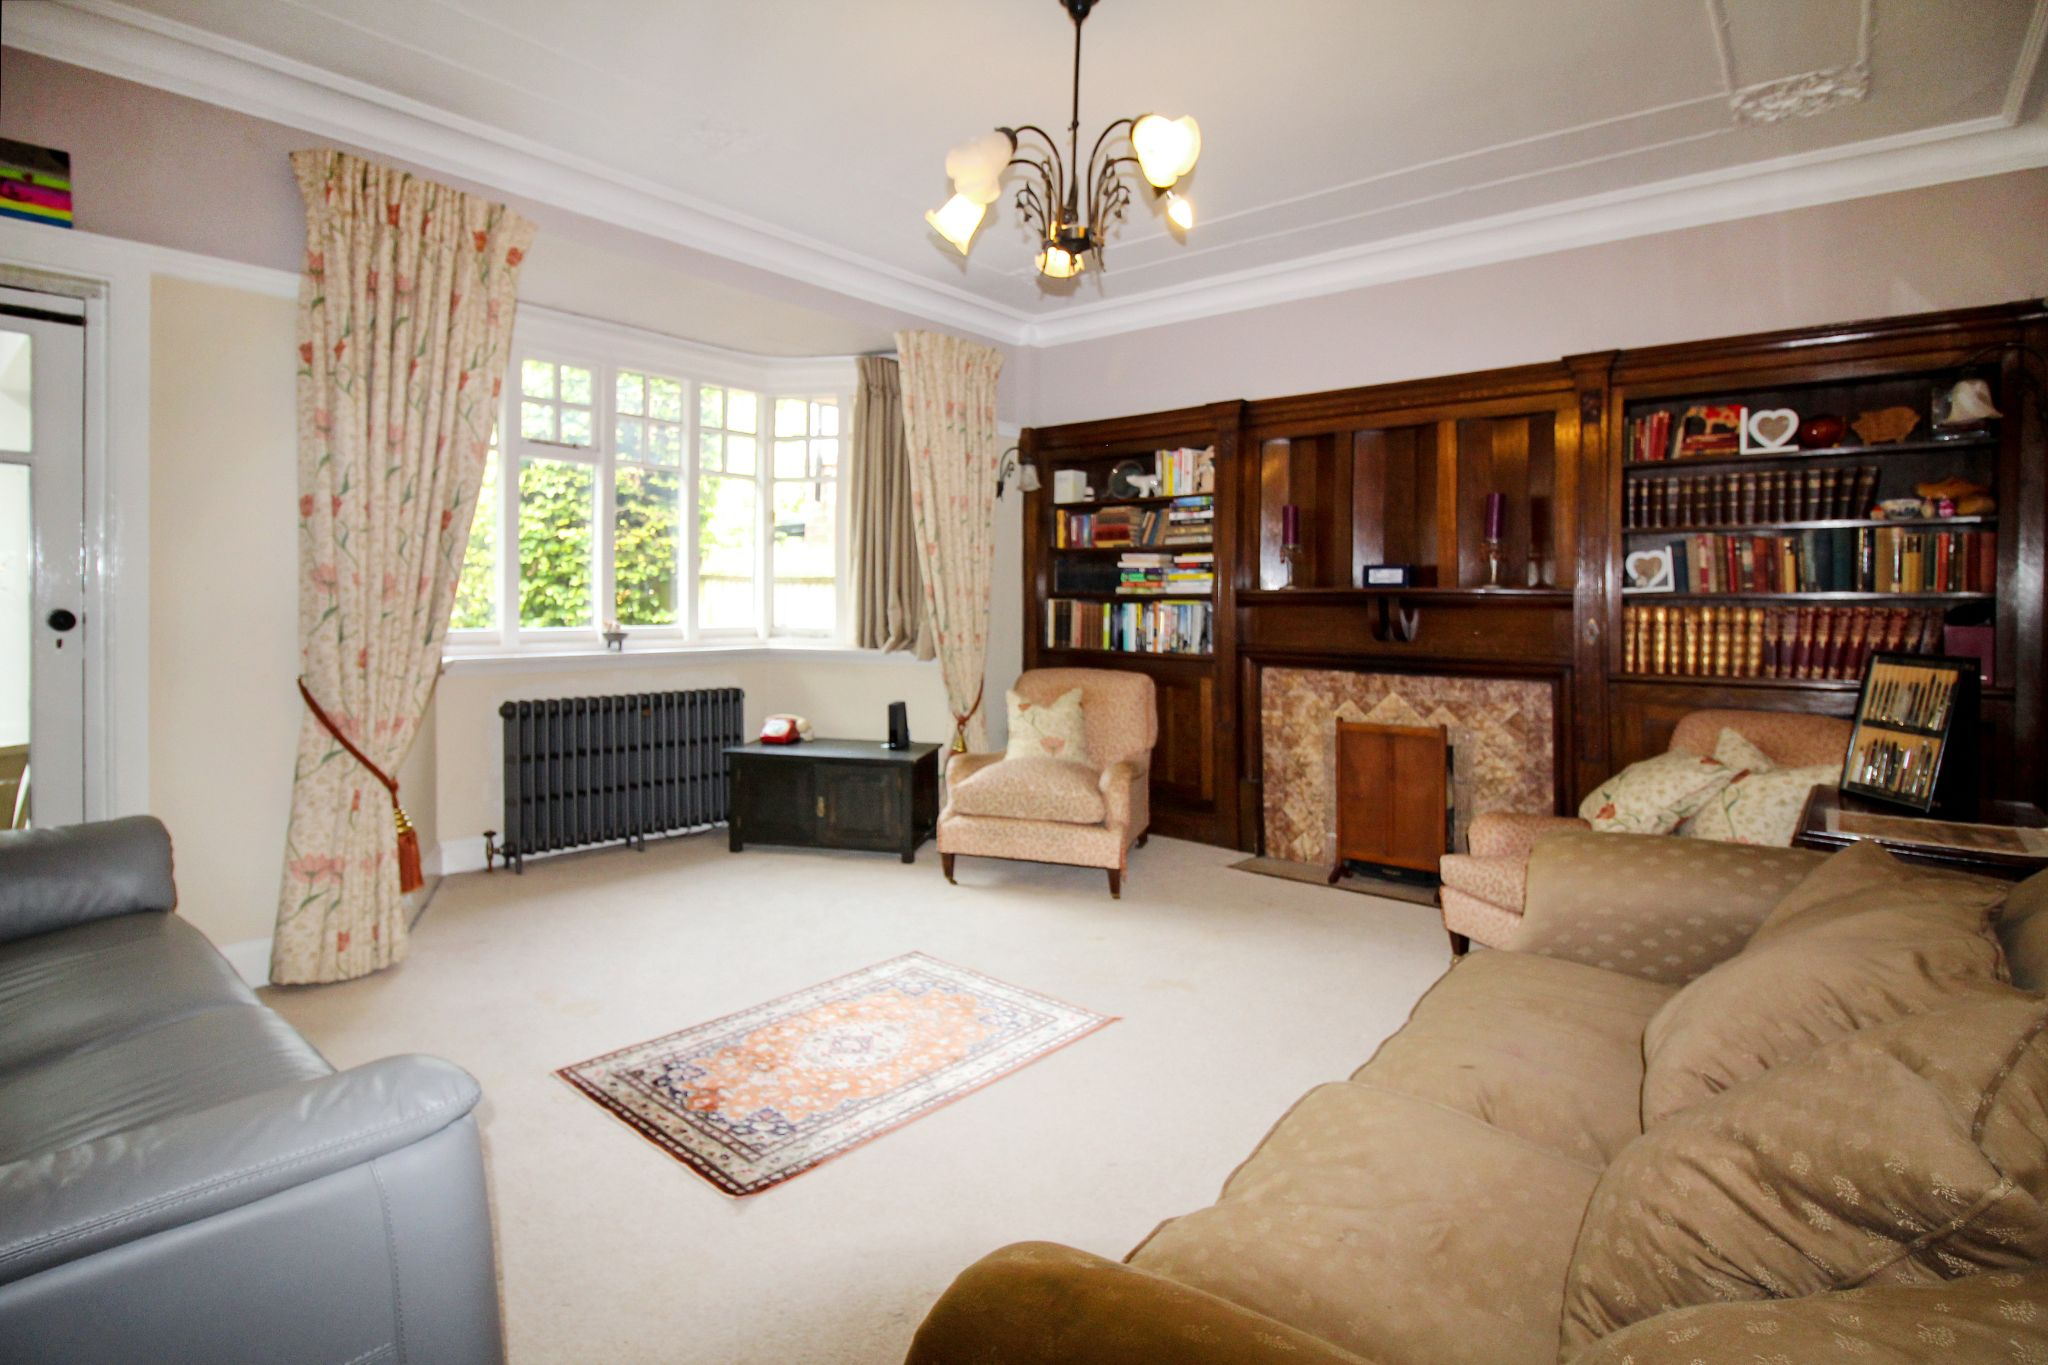 5 bedroom detached house For Sale in Solihull - Photograph 8.